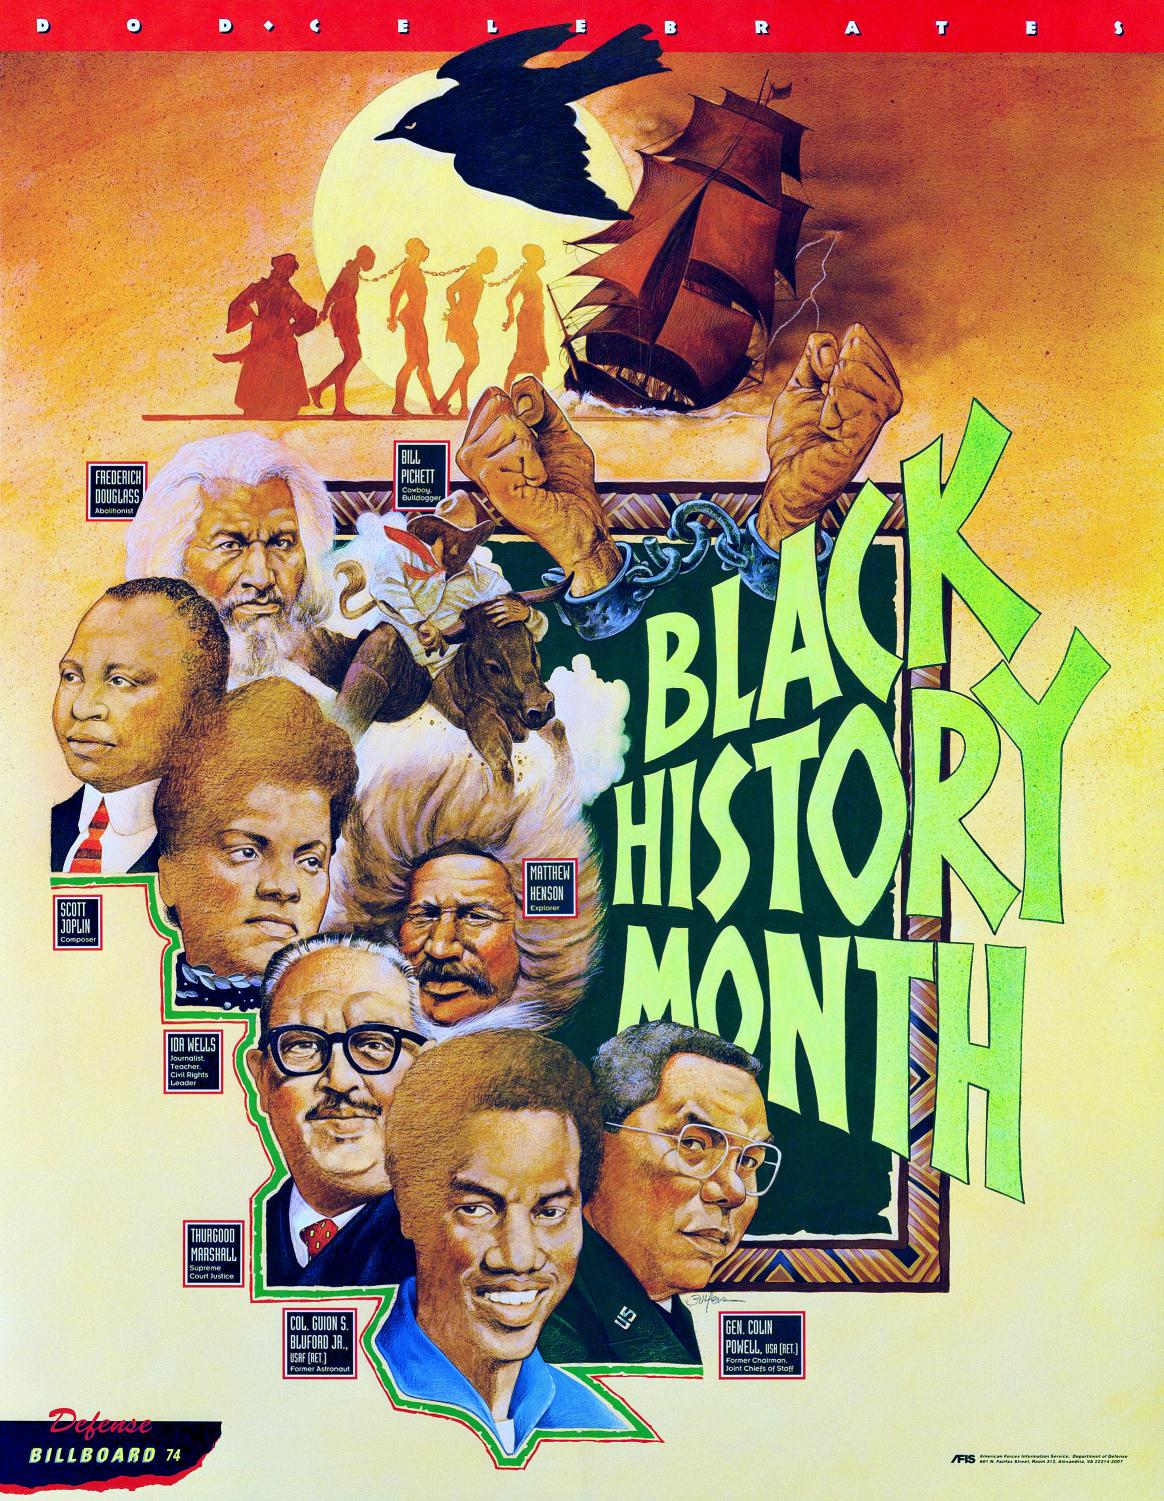 Each Black History Month, we thank our black ancestors for the opportunities they bravely fought for, even as we continue to struggle to strive for more.